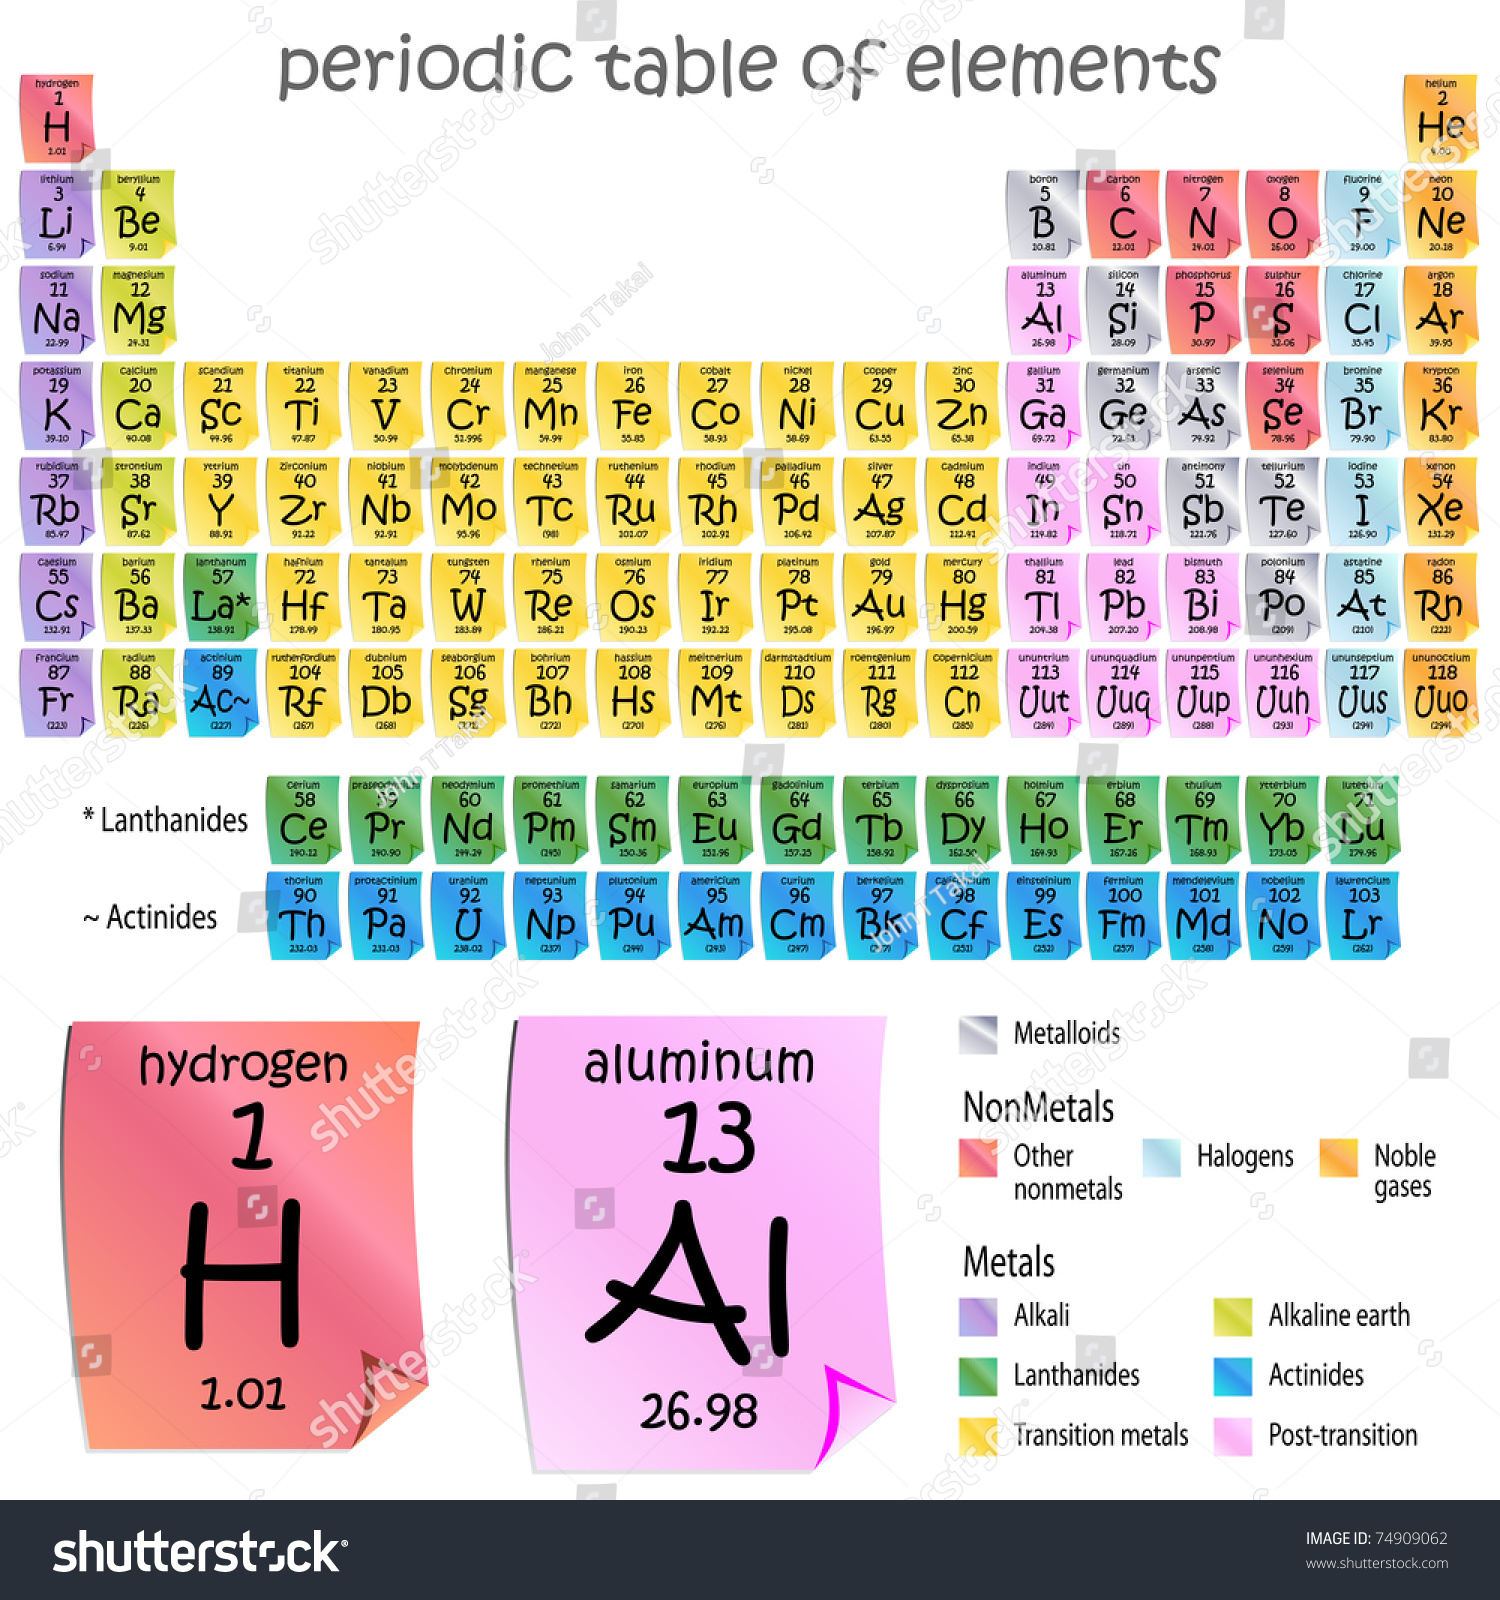 Periodic table 112 choice image periodic table images image periodic table elements sticky note stock illustration an image of a periodic table of elements gamestrikefo Image collections